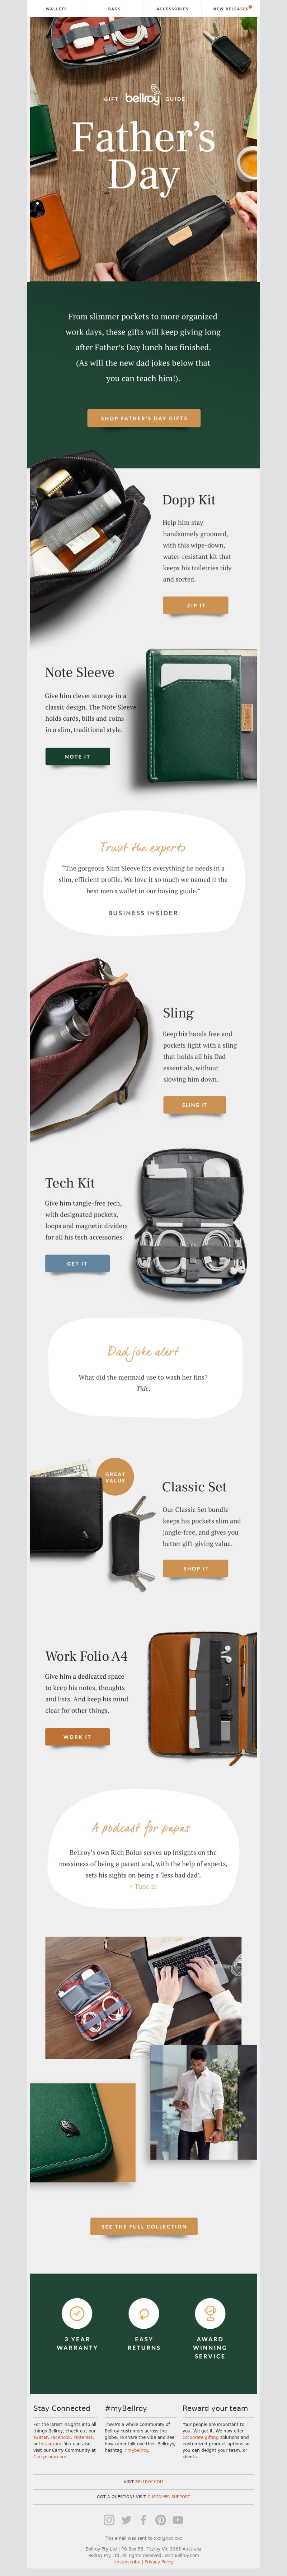 Bellroy - Our Father's Day gift guide is here!